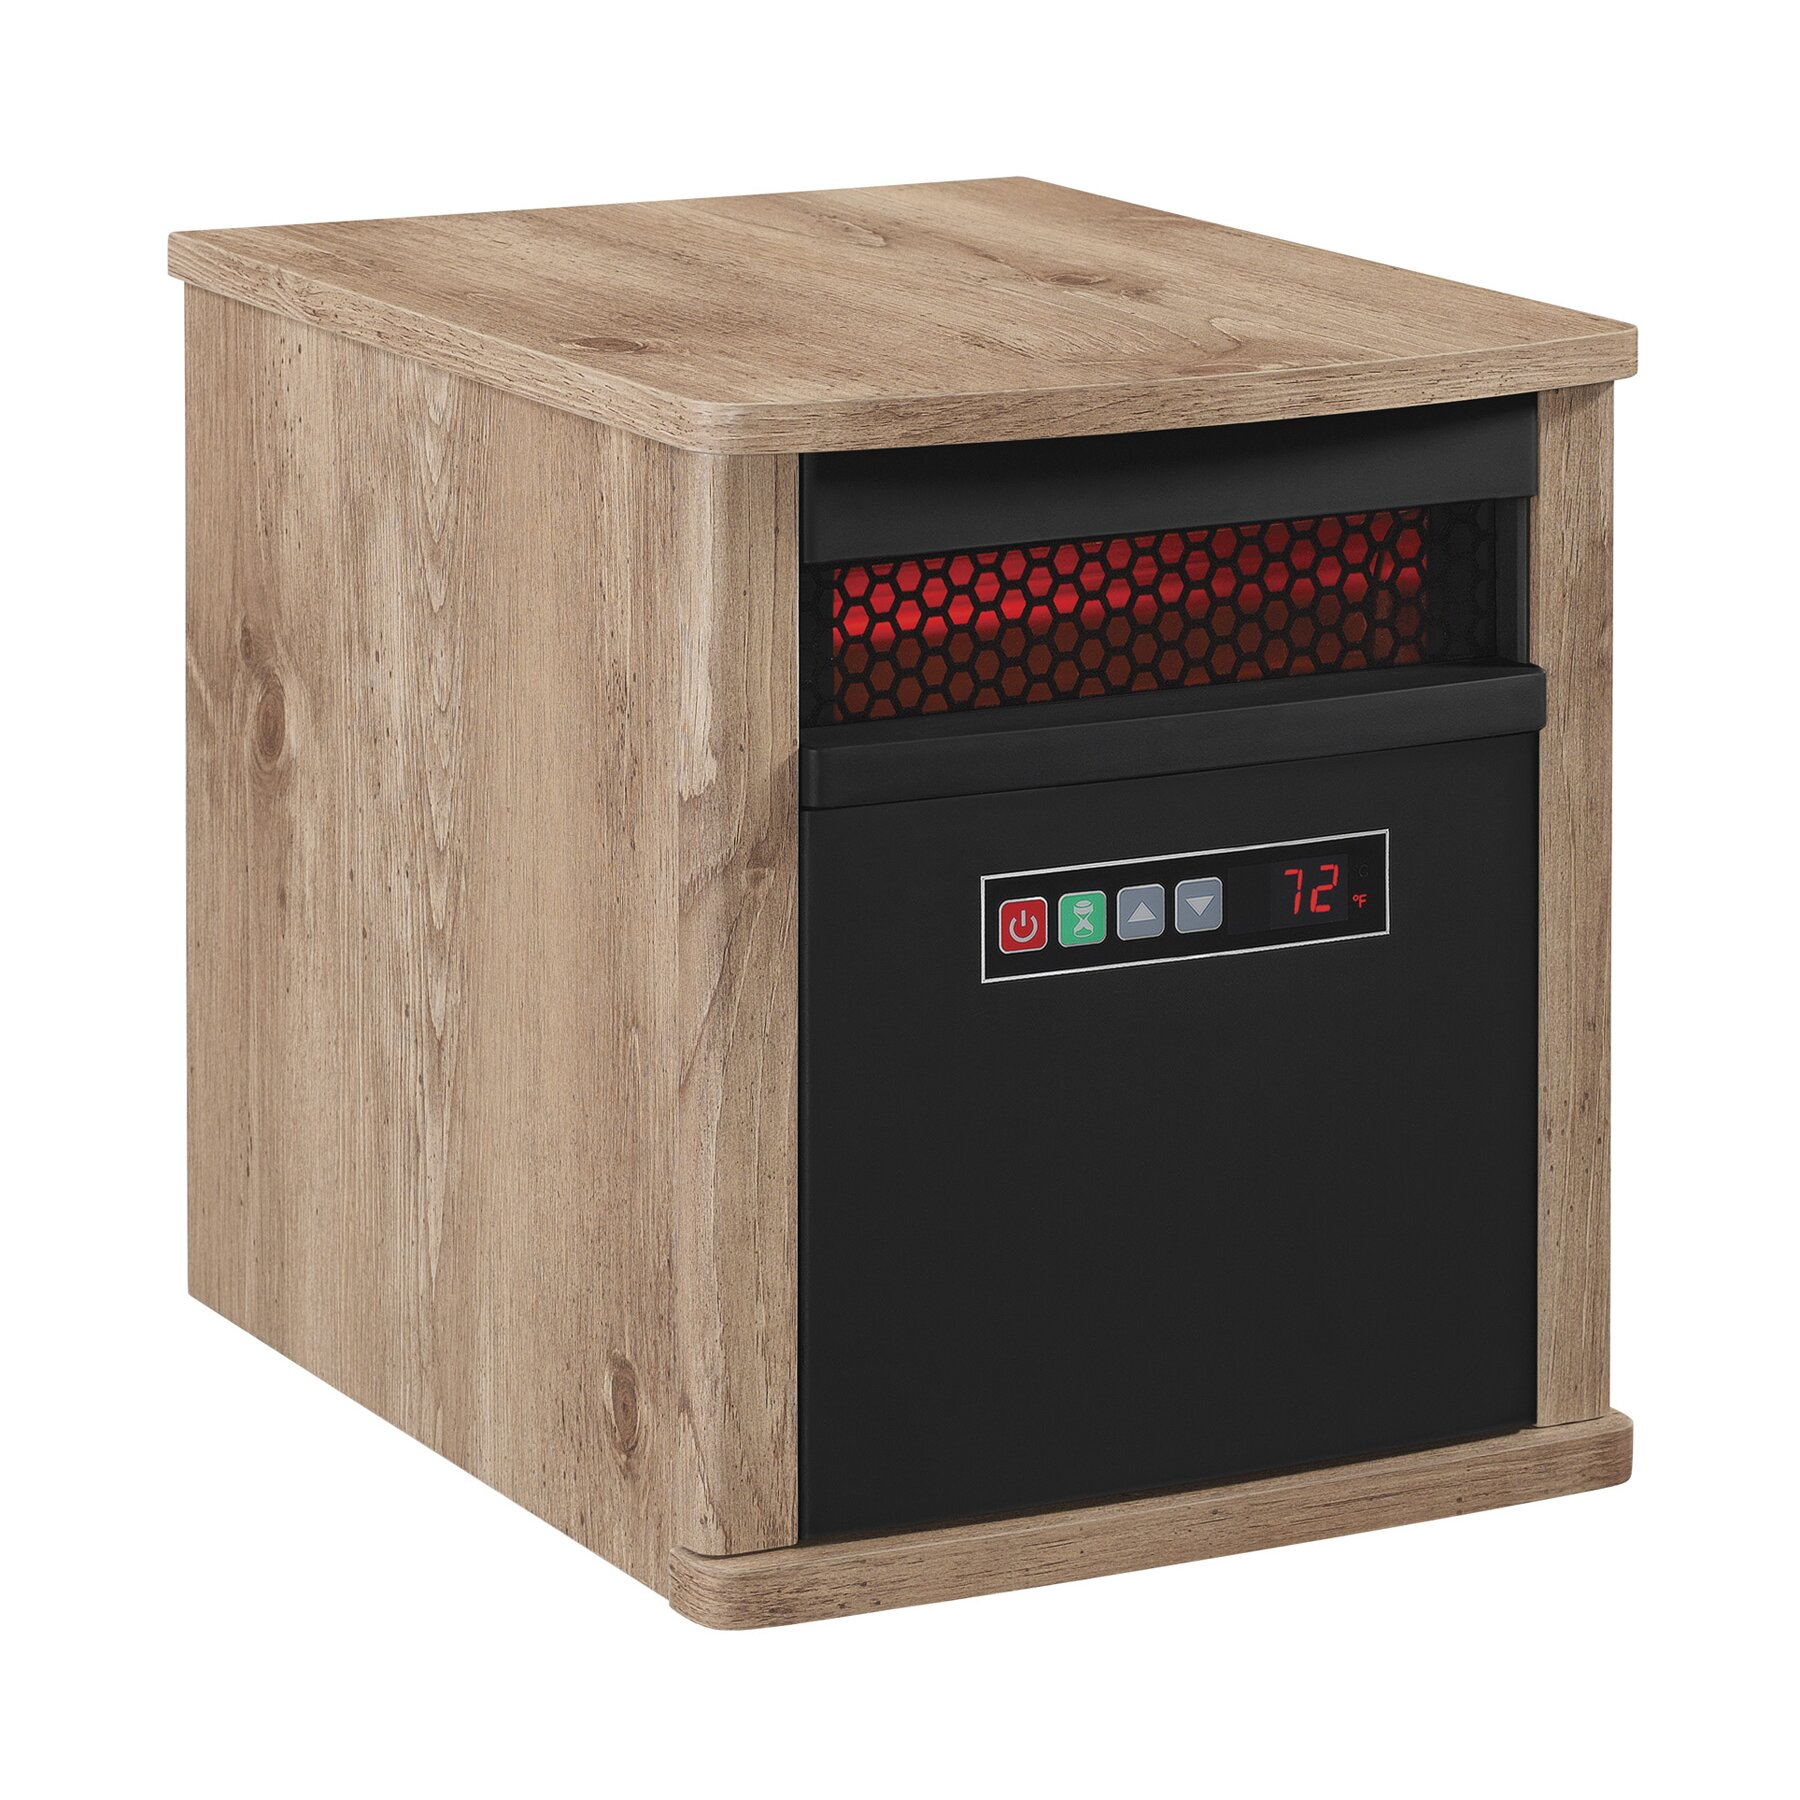 Infra Red Heating : Duraflame btu portable electric infrared cabinet